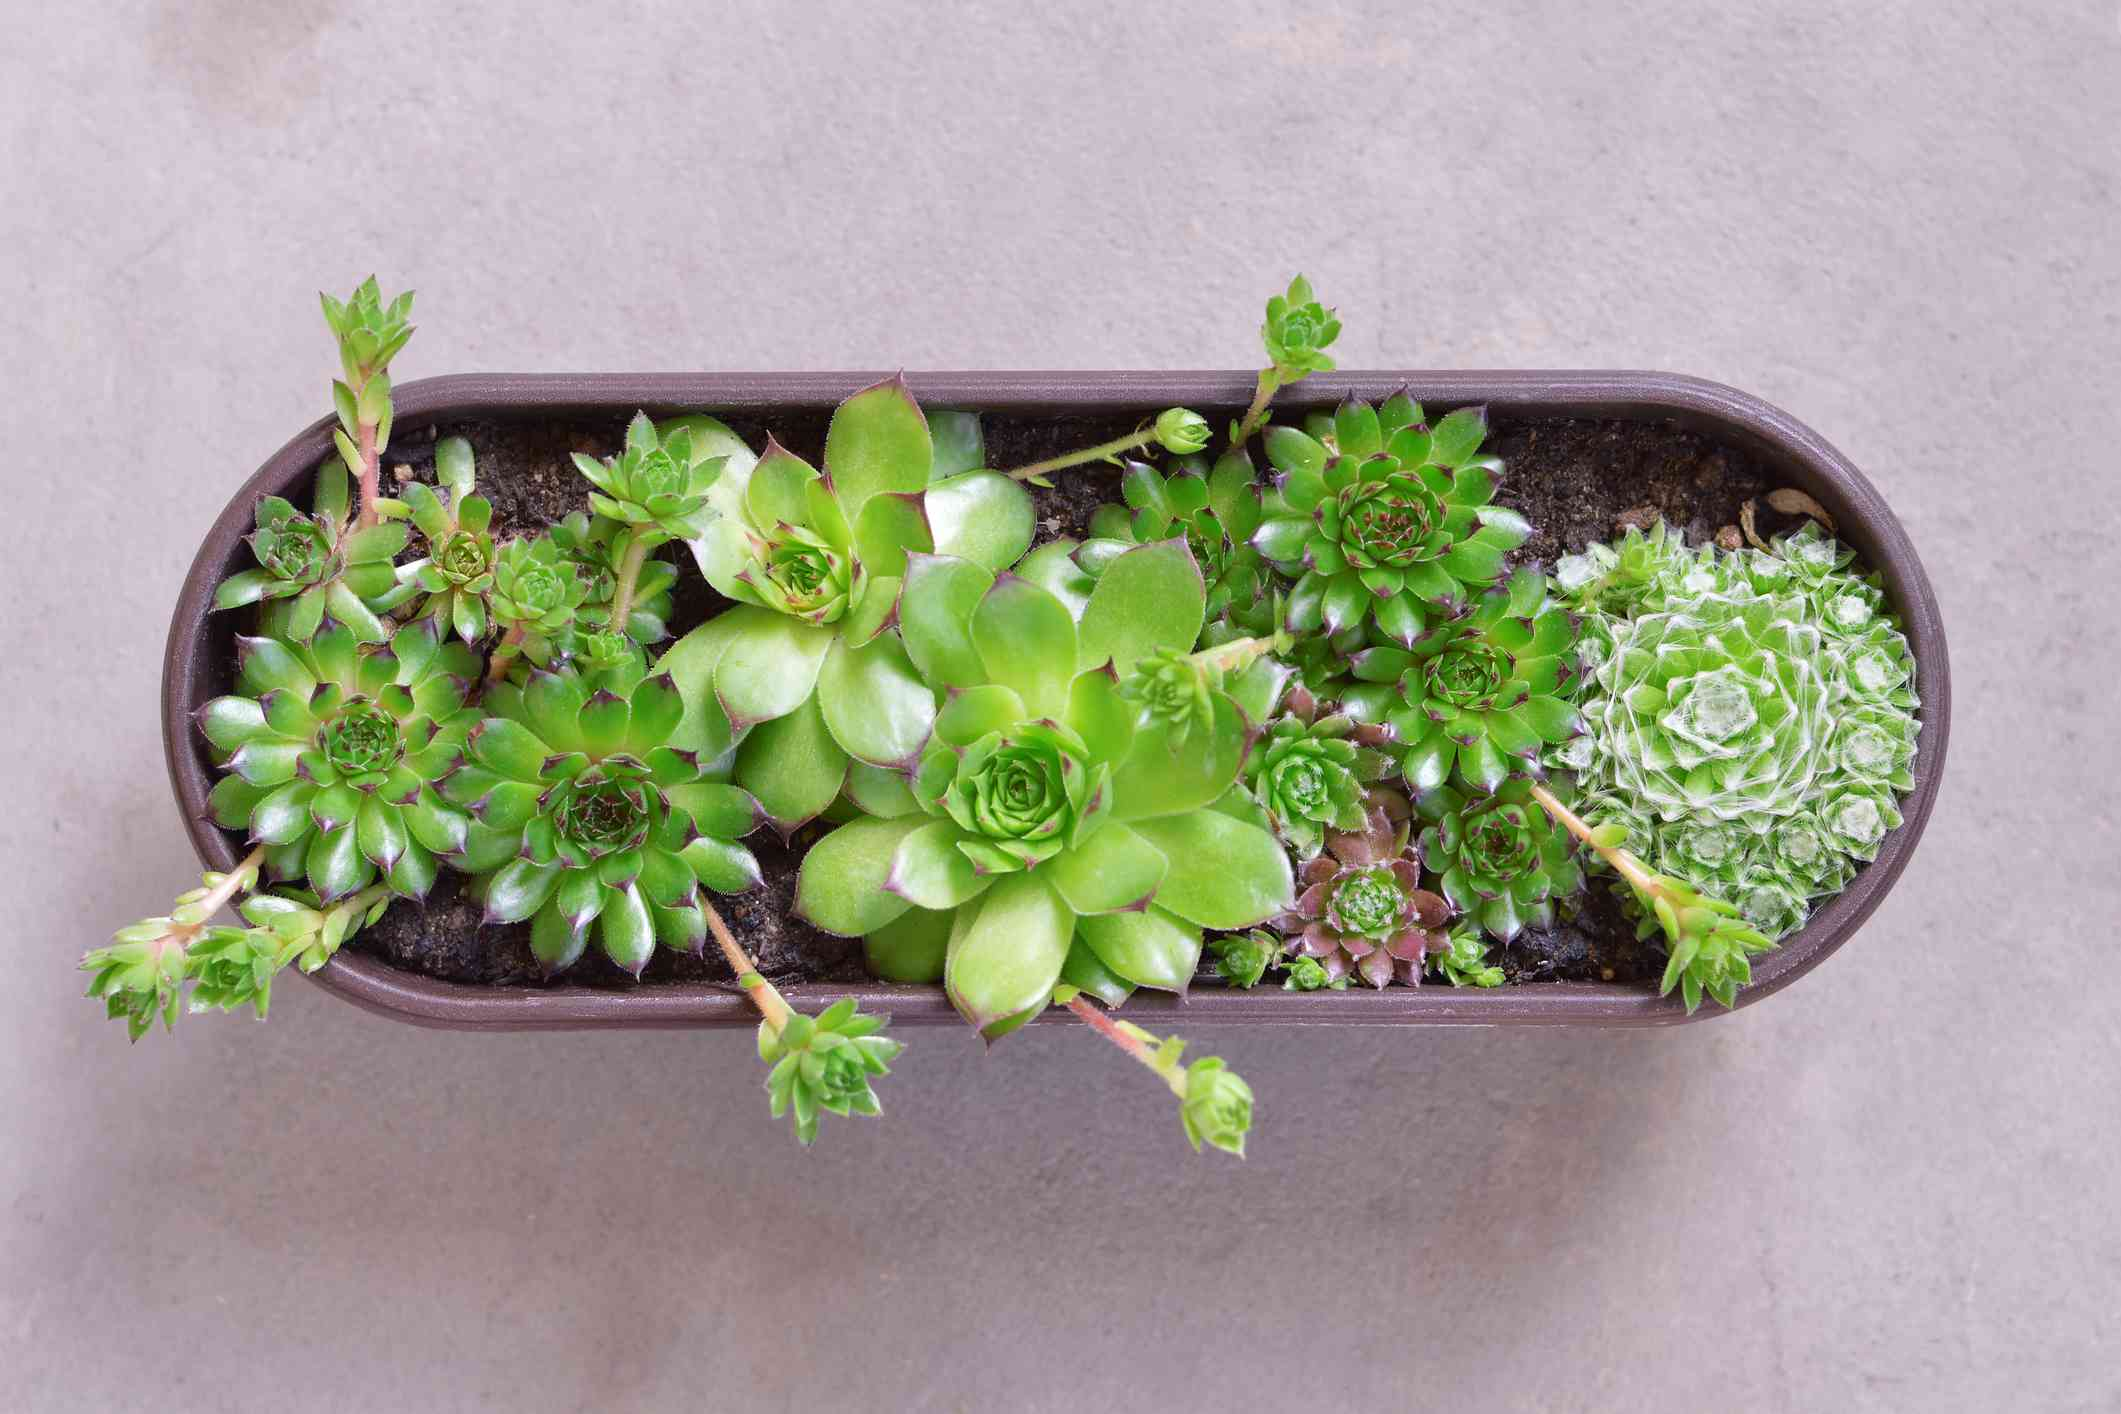 hen and chick plants in oval container